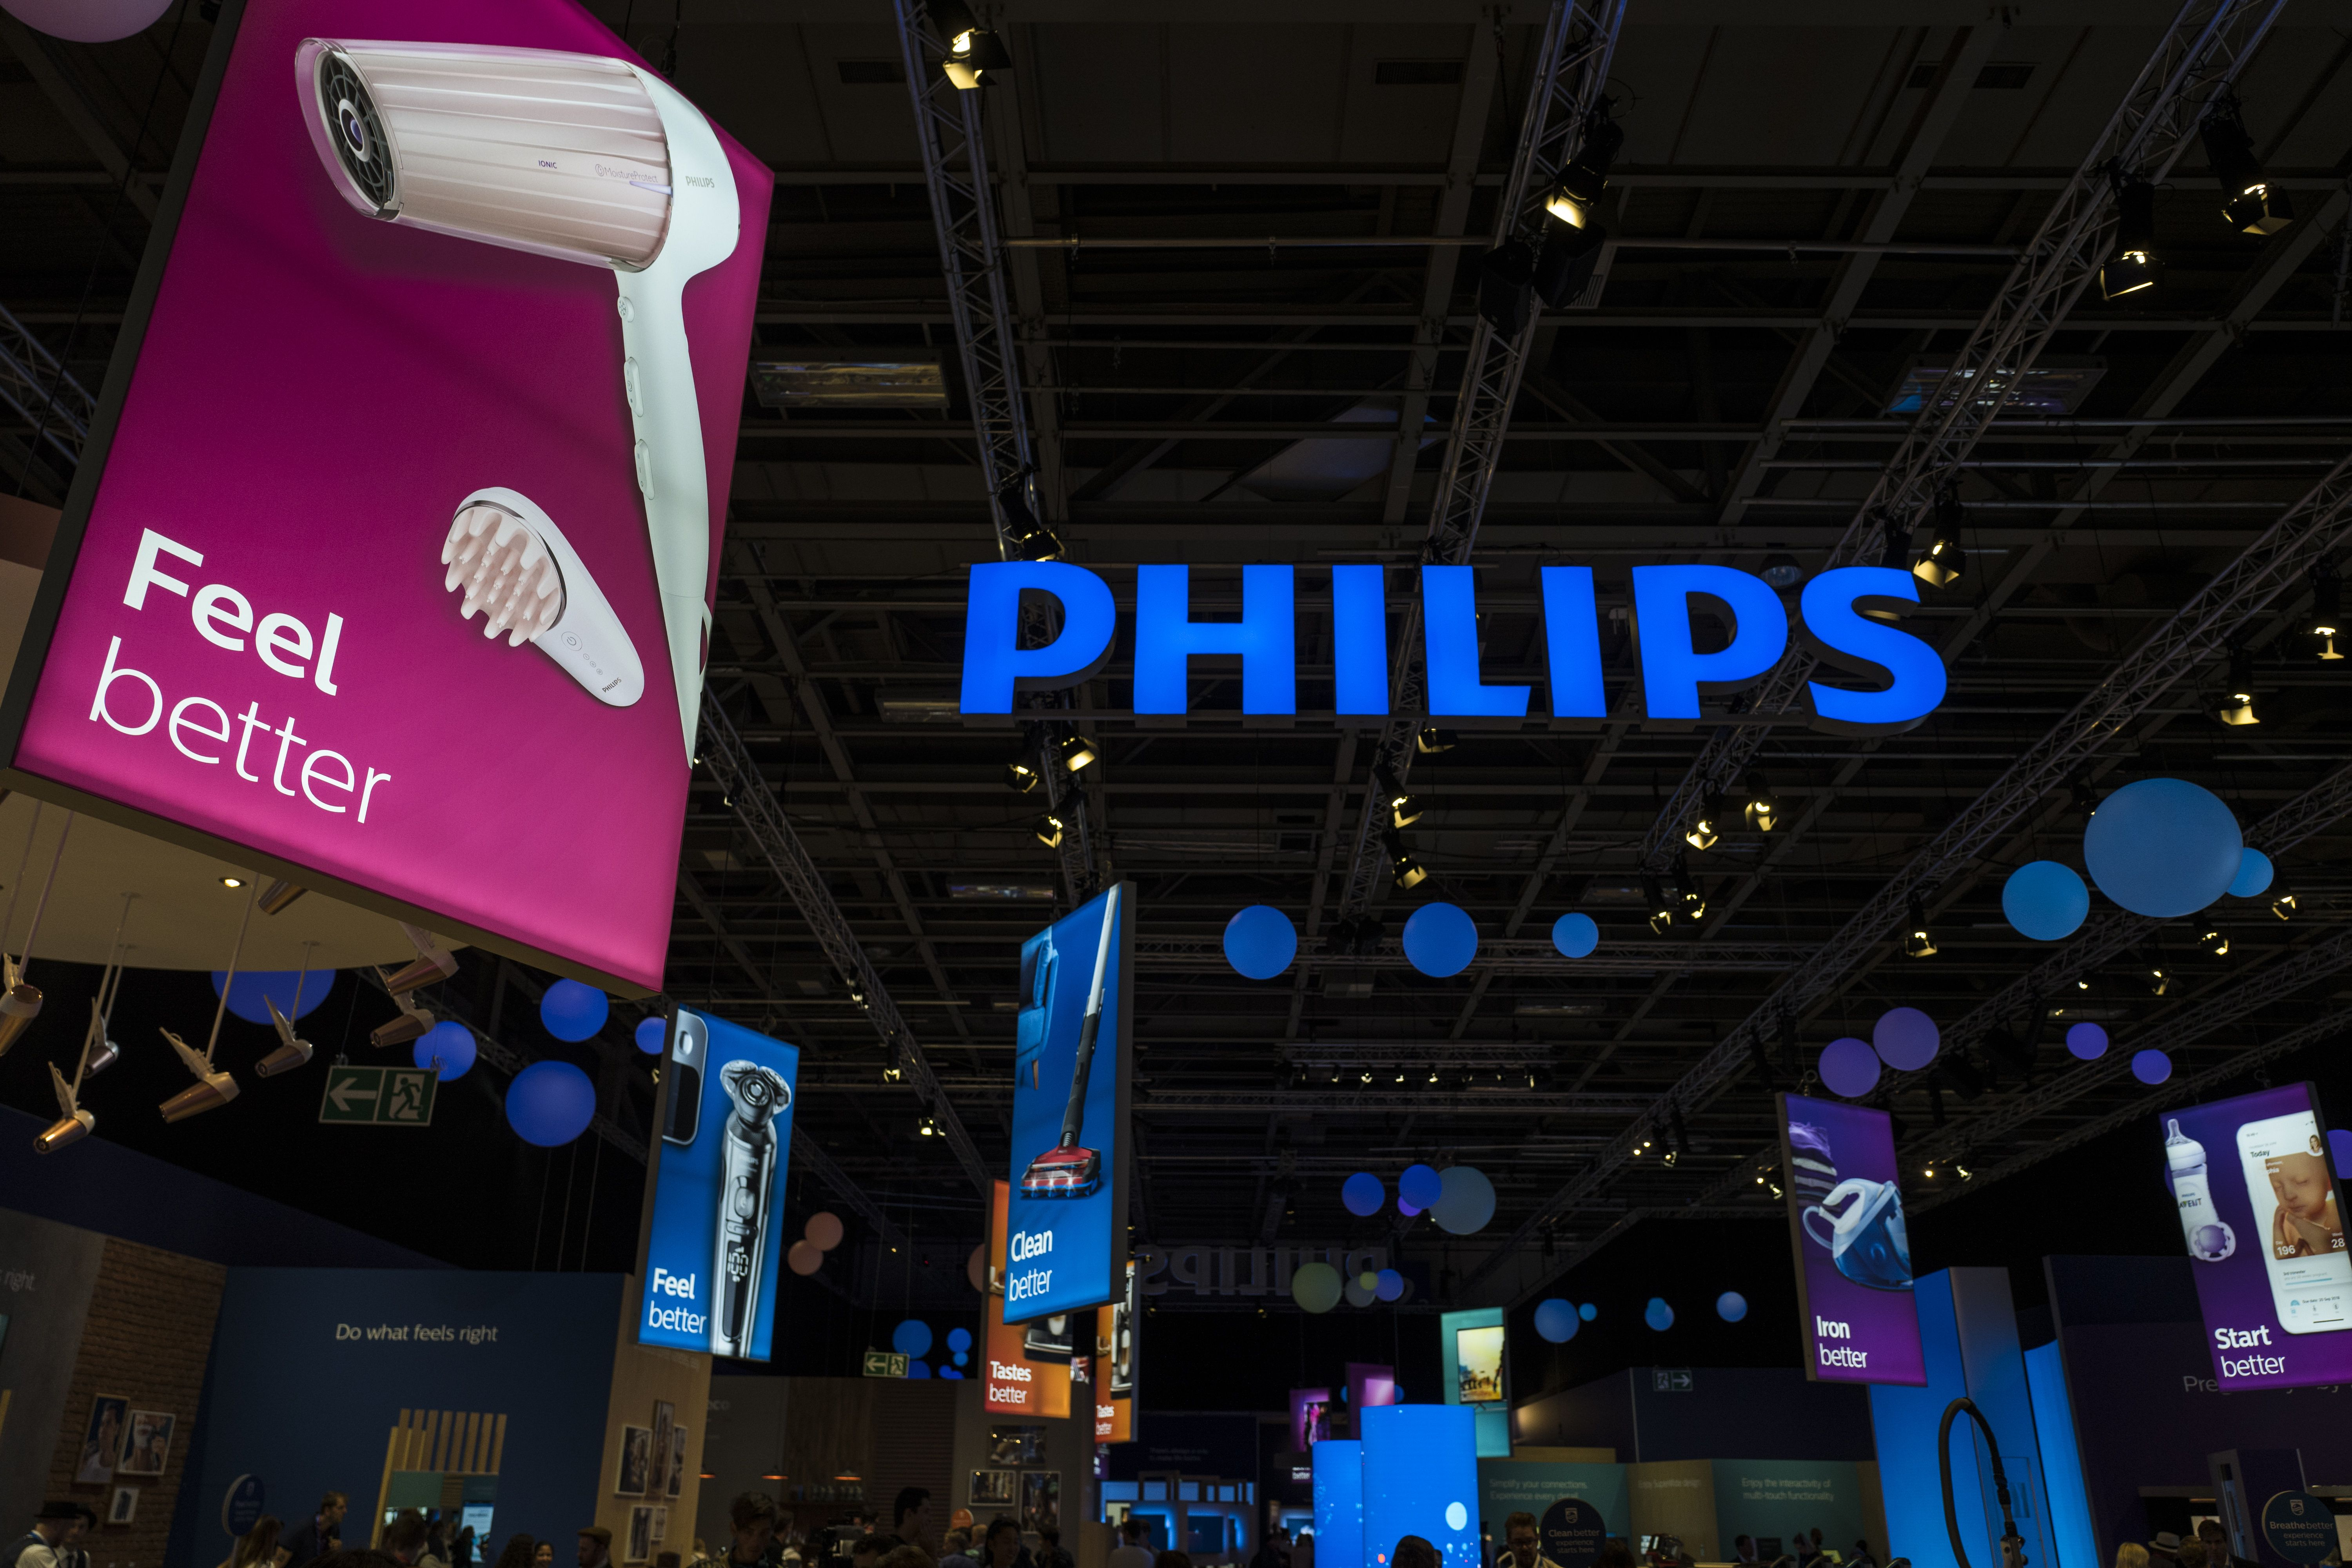 Dutch firm Philips has a soft headband called SmartSleep, which includes a white noise generator that aims to deepen sleep. u2014 AFP Relaxnews